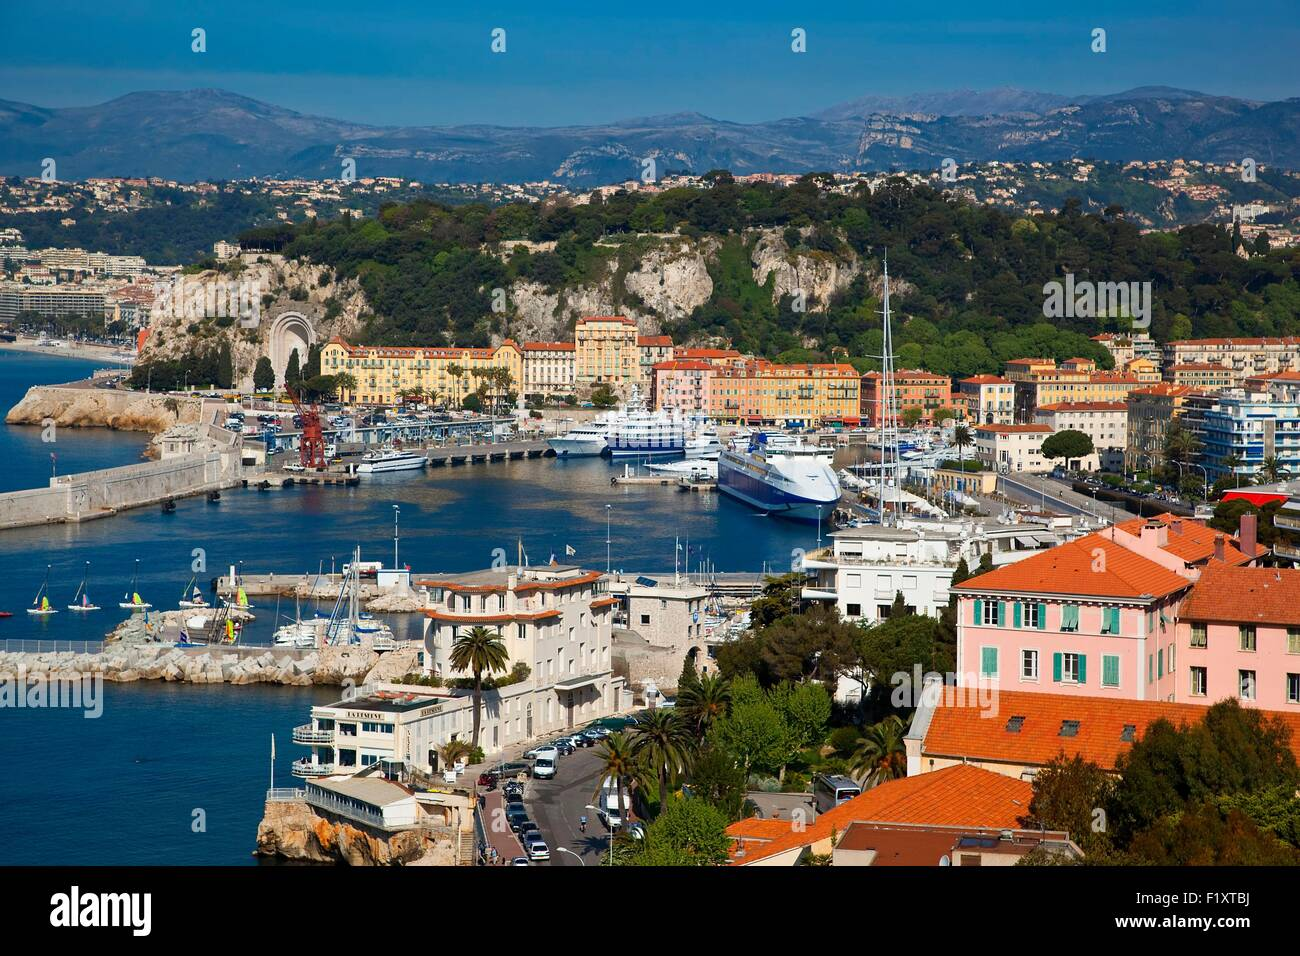 France, Alpes Maritimes, Nice, Harbor - Stock Image